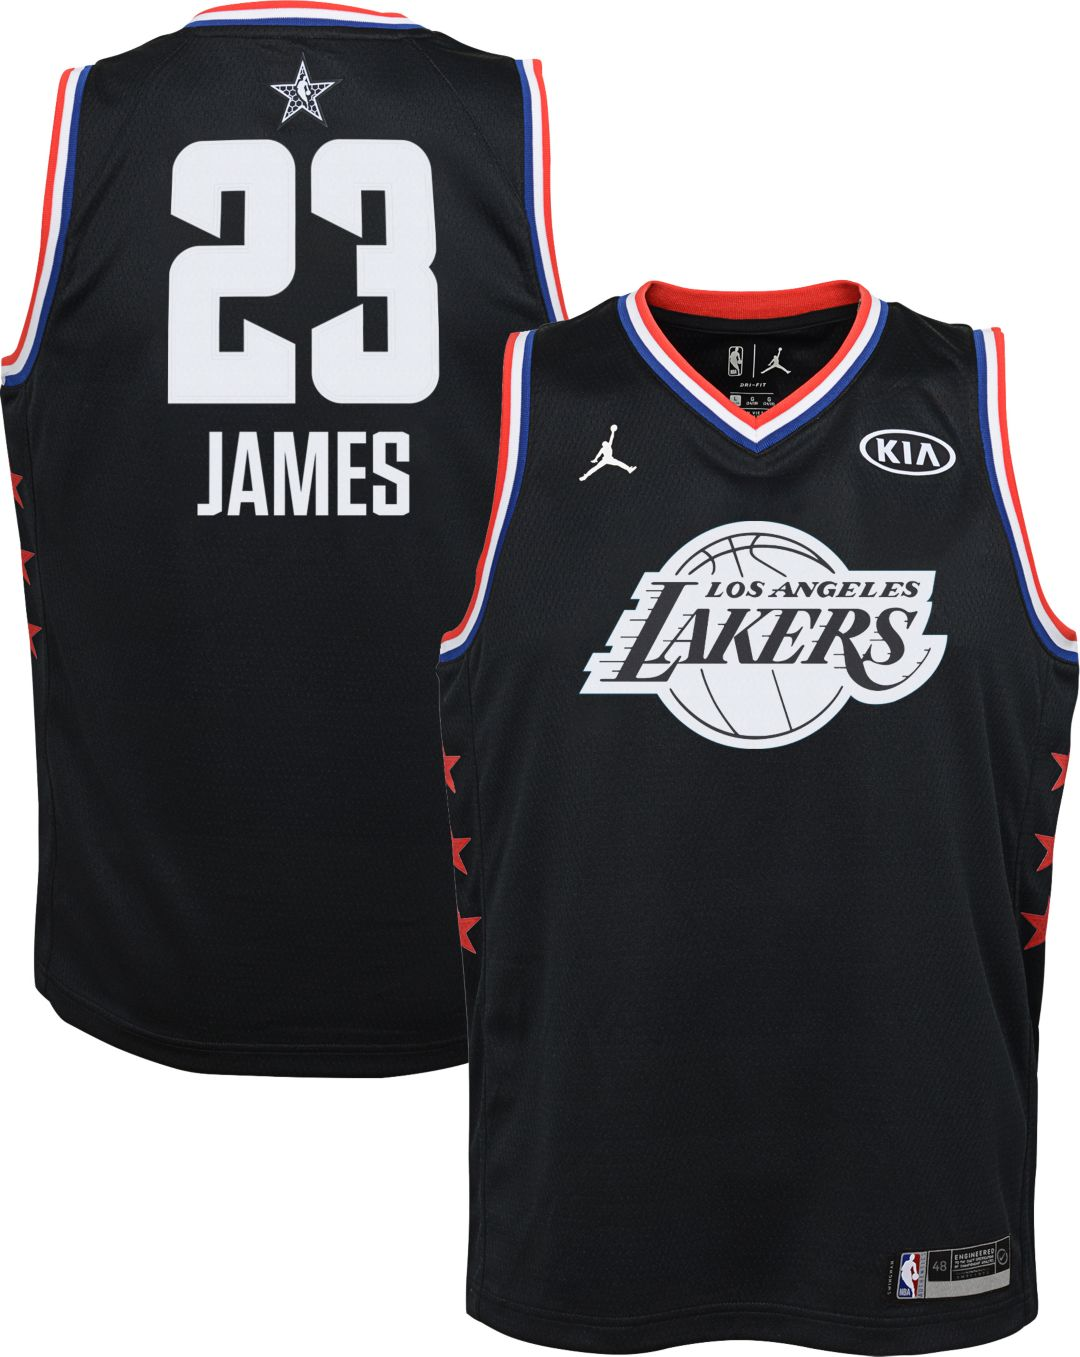 ab10dff0ceb Jordan Youth 2019 NBA All-Star Game LeBron James Black Dri-FIT Swingman  Jersey